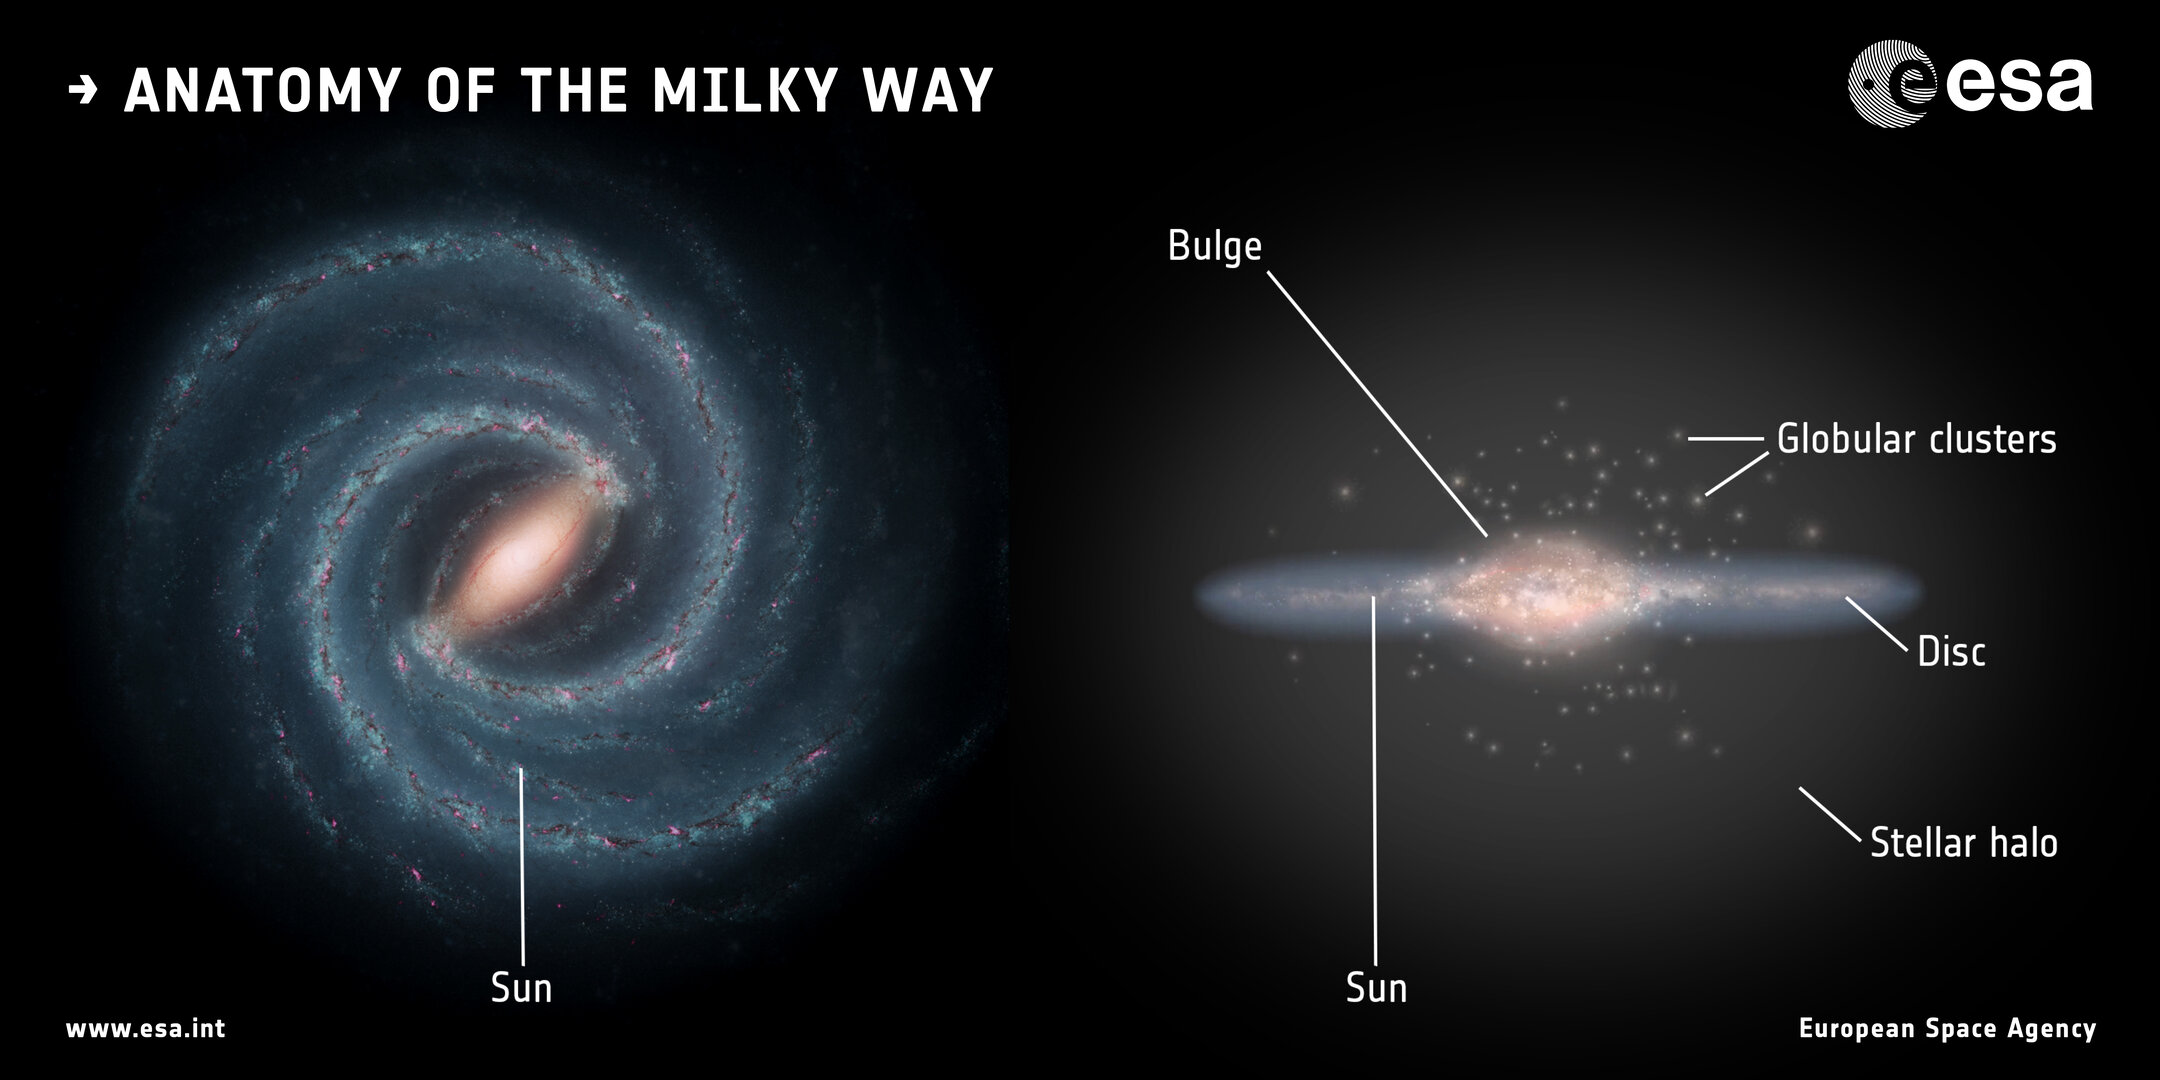 The components of the Milky Way